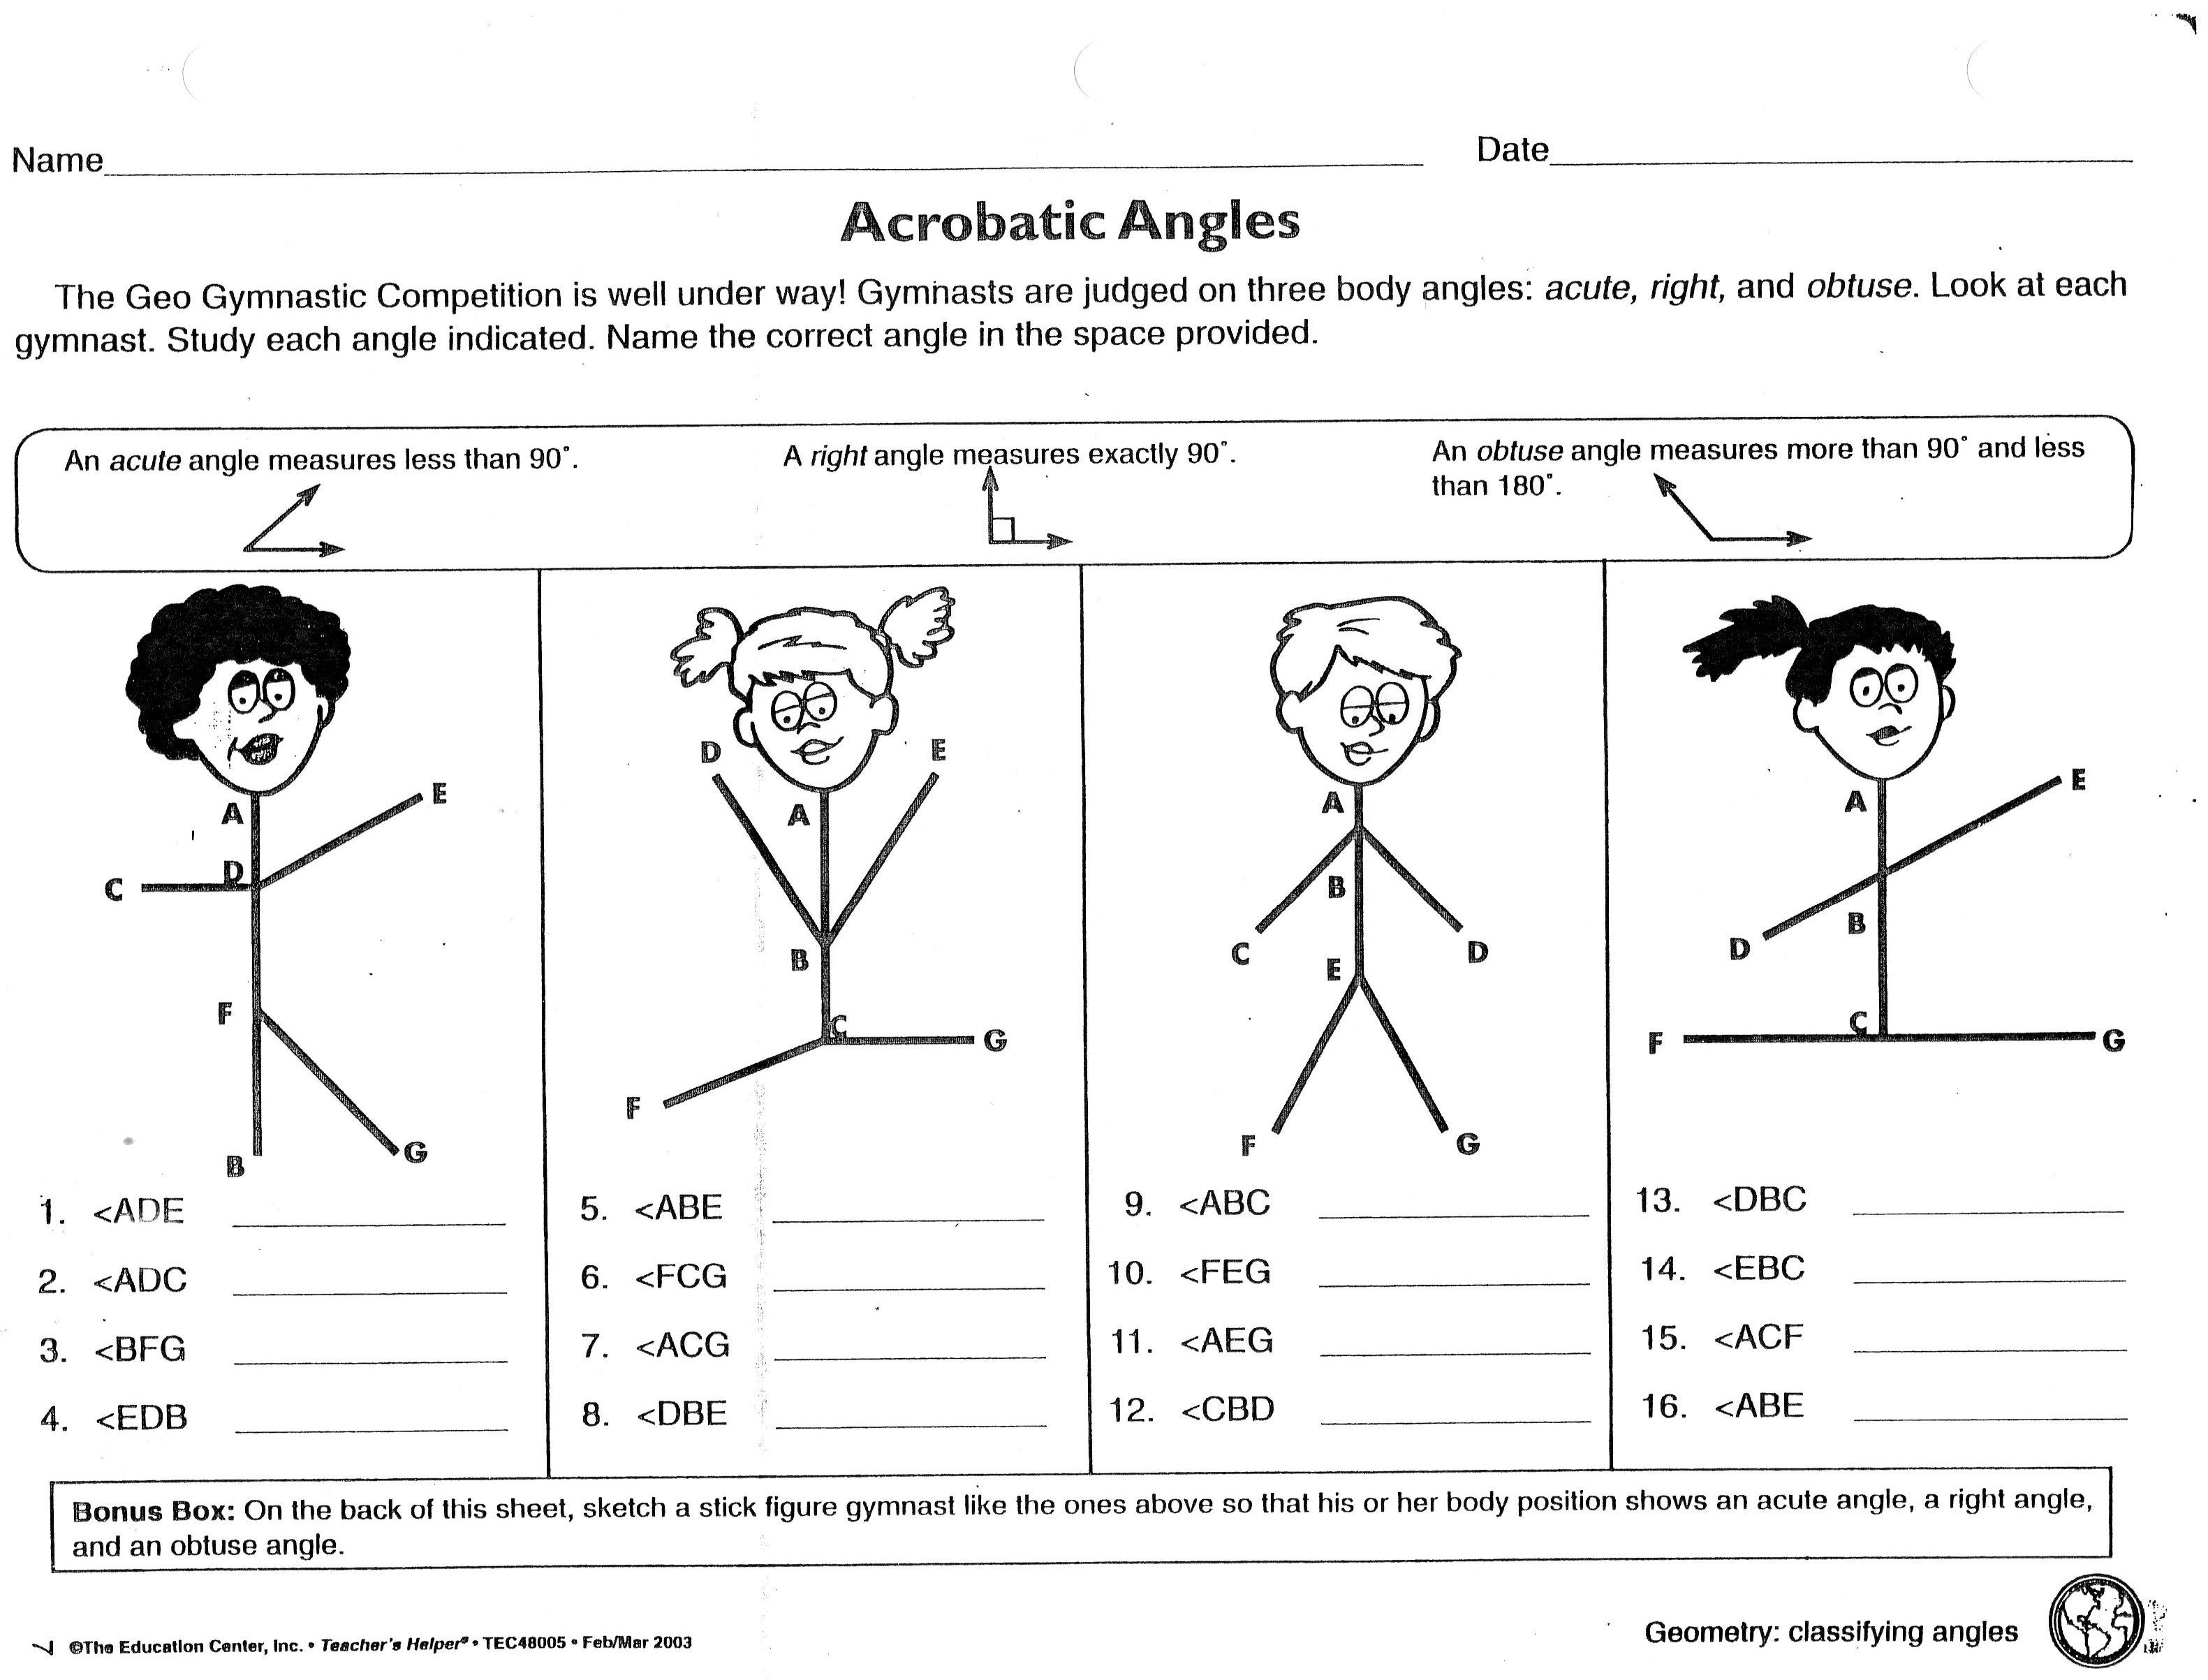 Worksheets Measuring Angles Worksheet Pdf angle relationships worksheets for geometry google search search